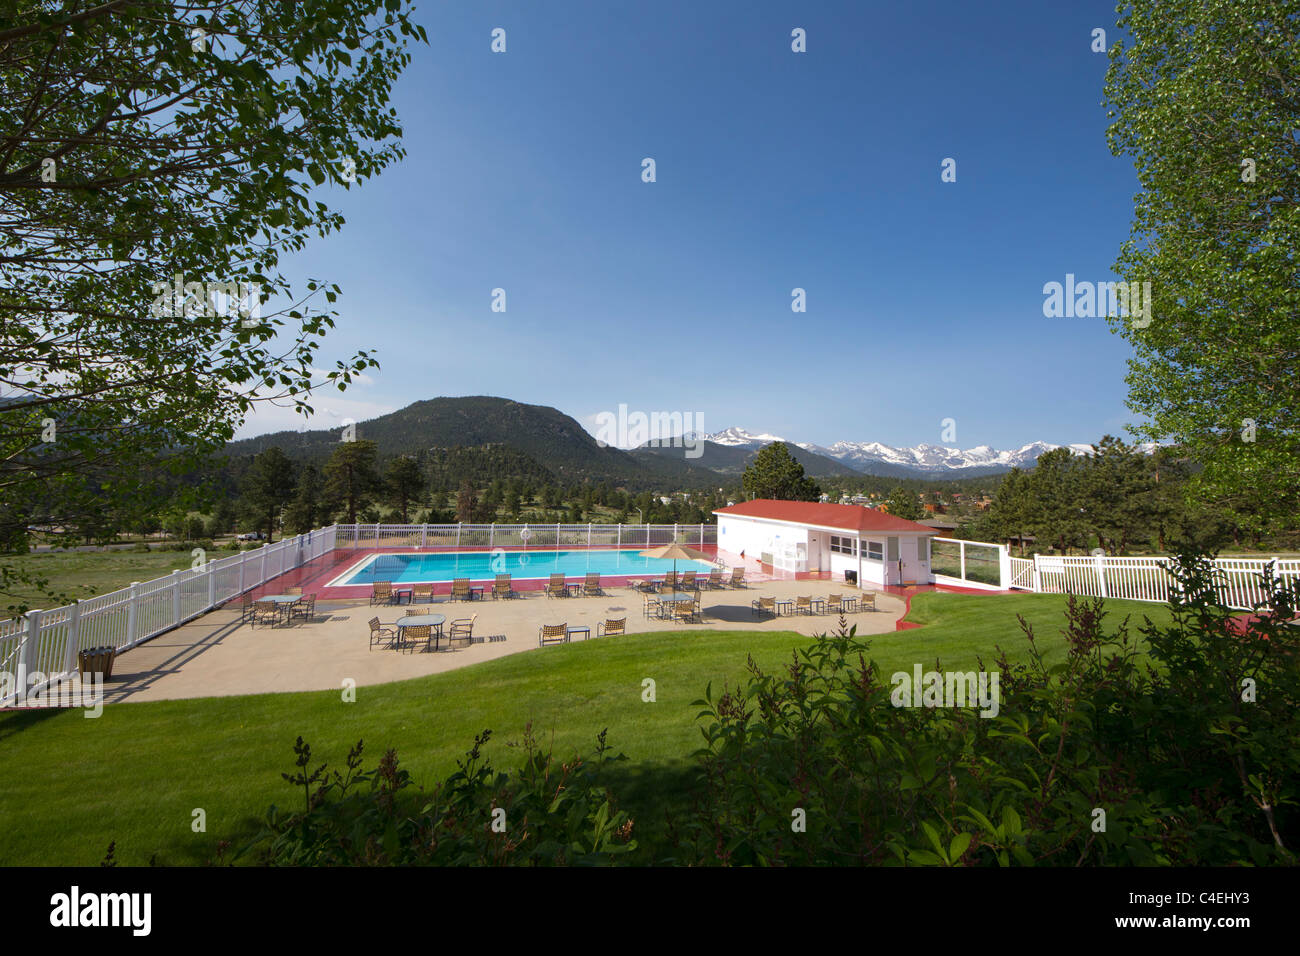 The Swimming Pool At The Stanley Hotel In Estes Park Colorado Stock Photo Royalty Free Image